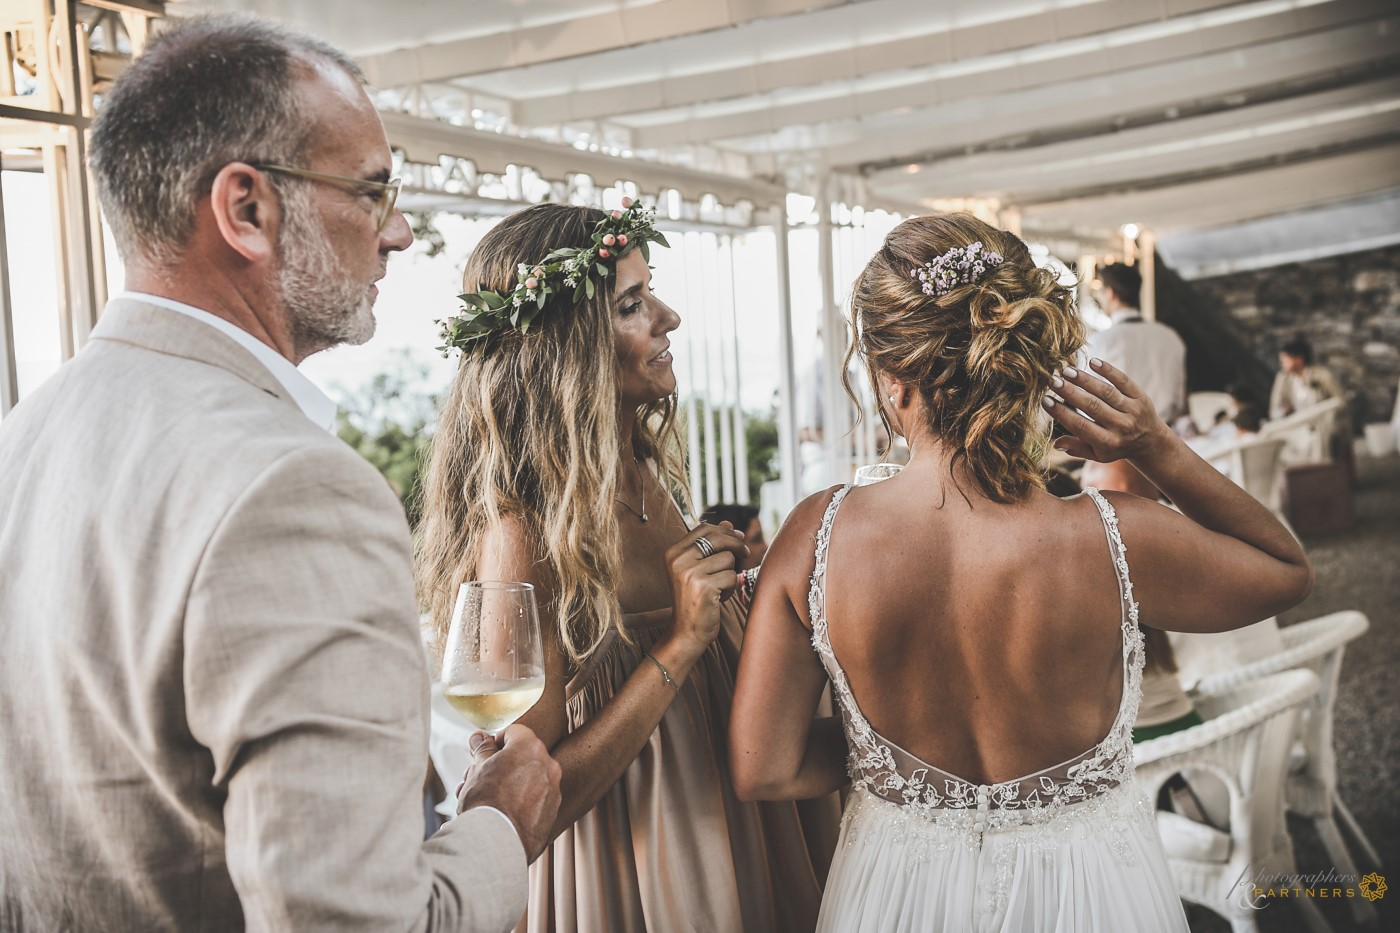 The bride shows her hairstyle.